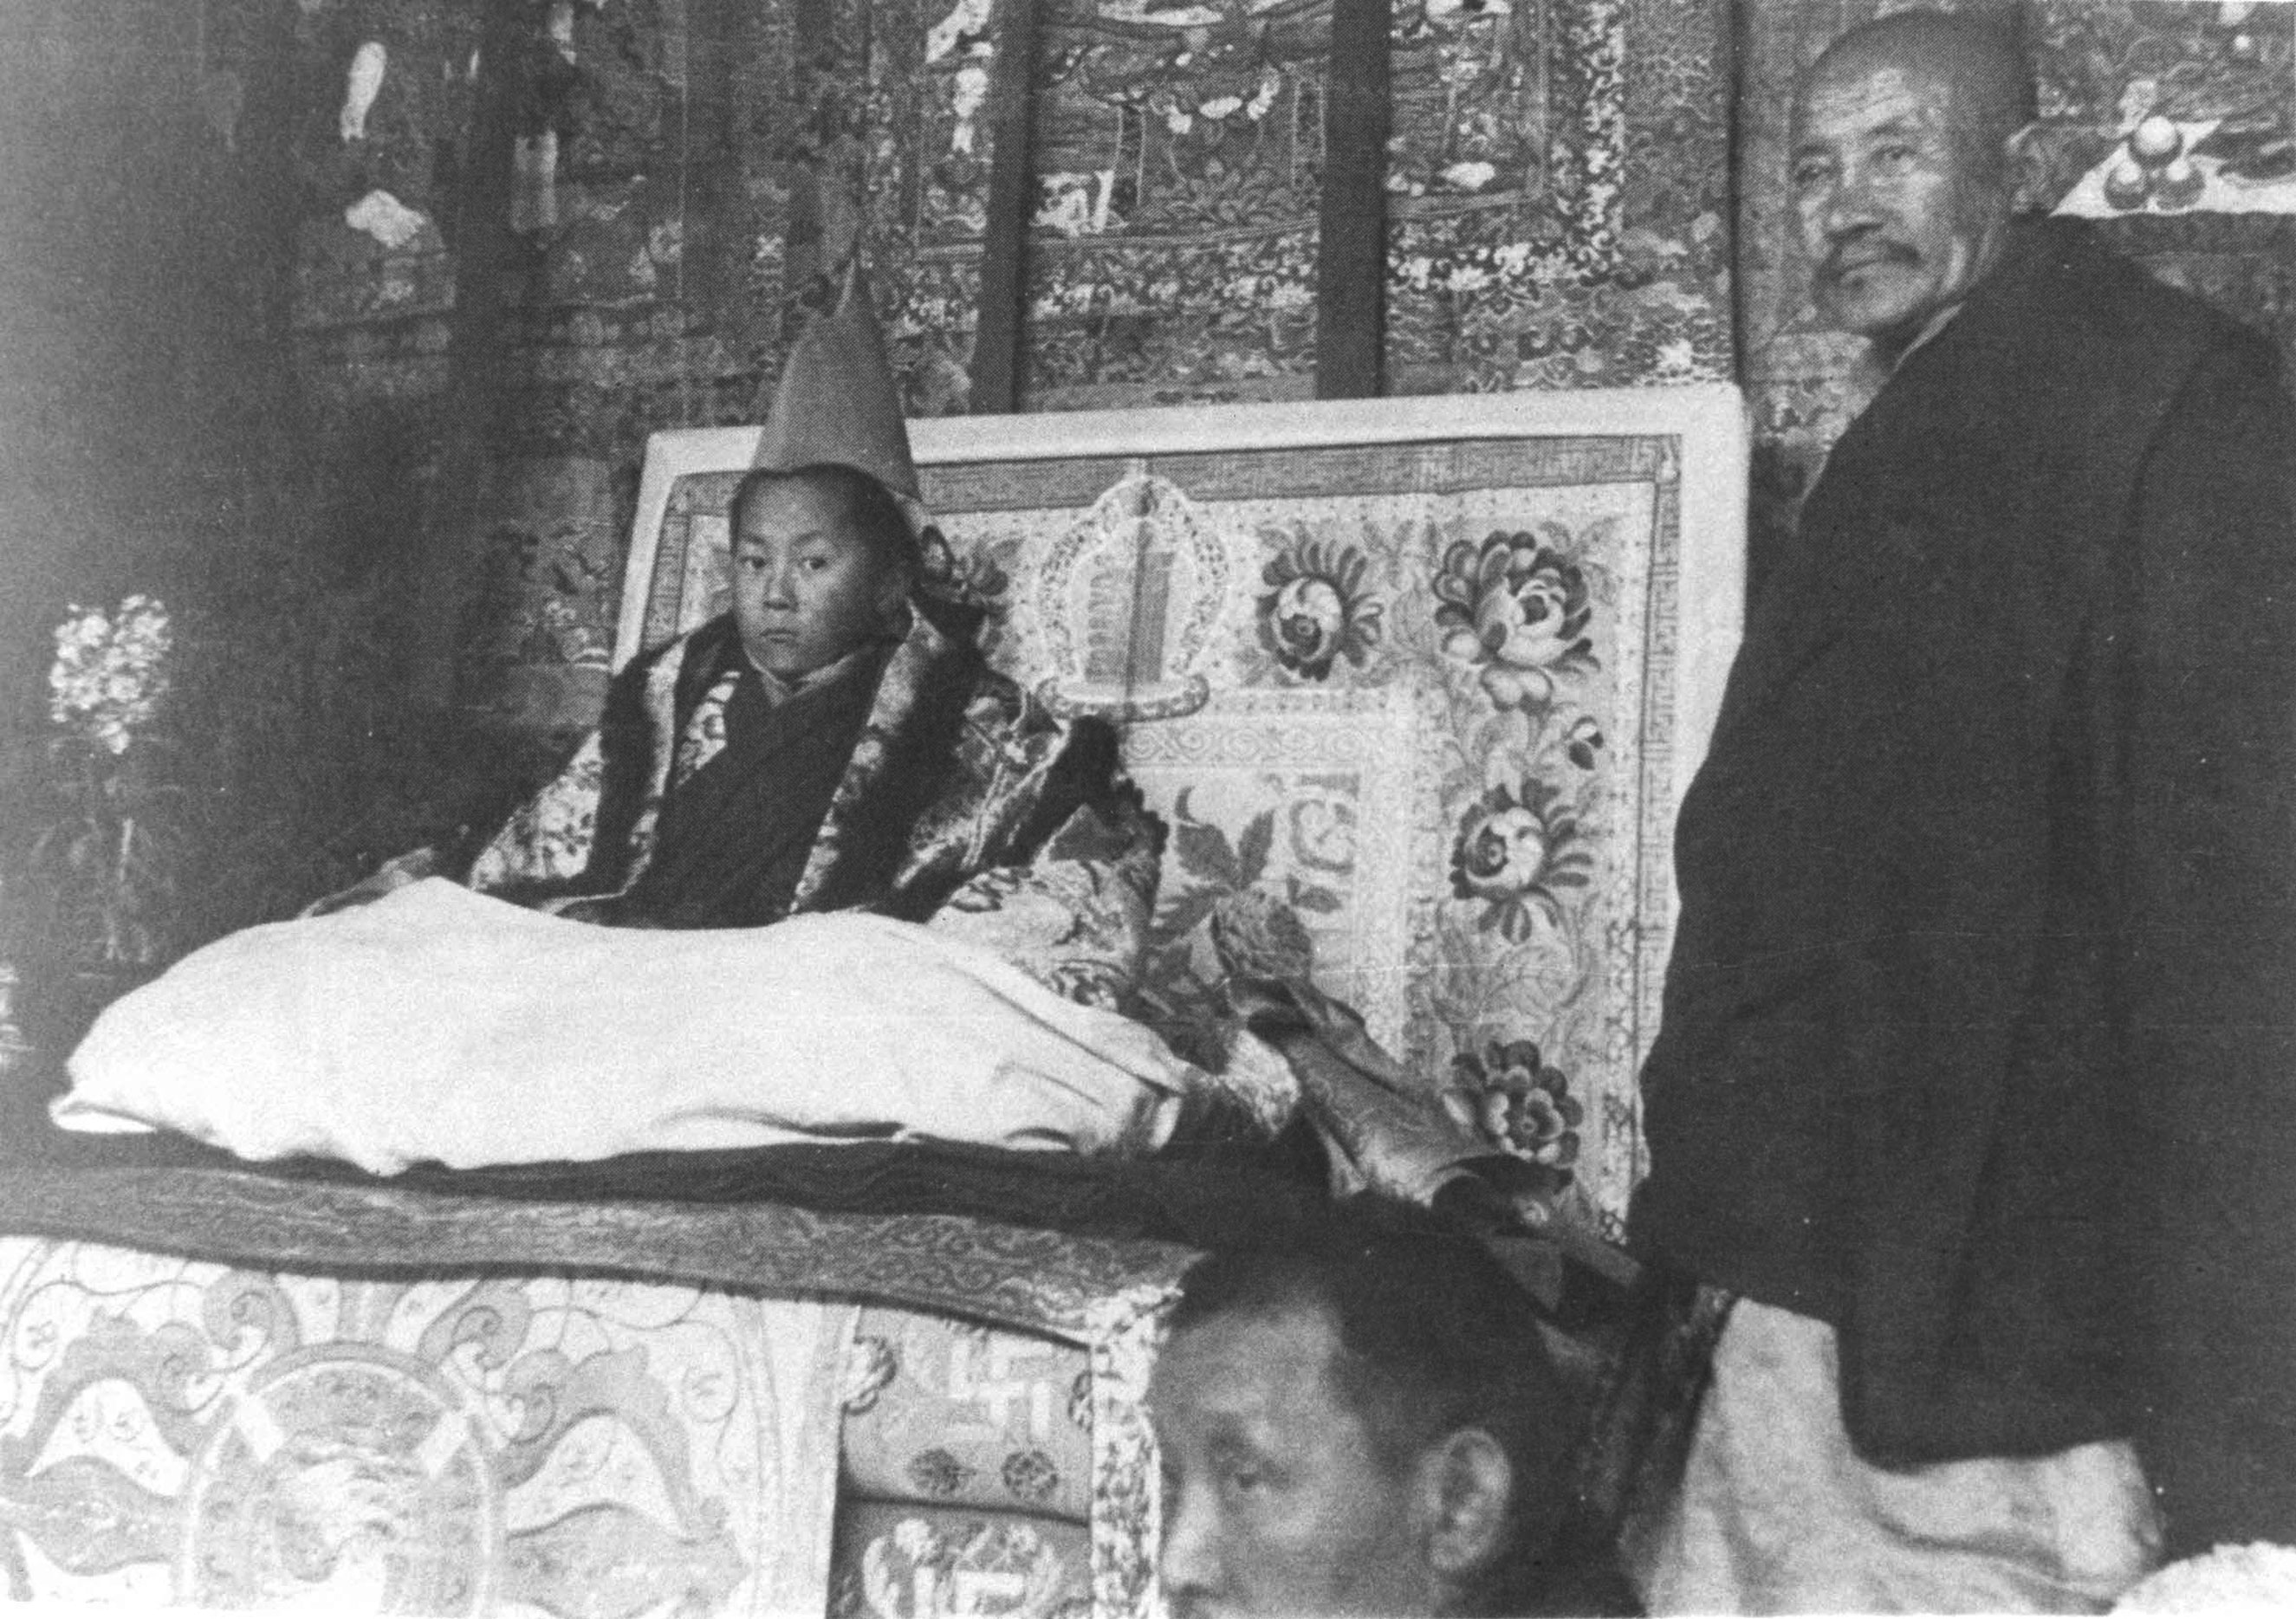 His Holiness at age 5 sitting on the throne during his official enthronement ceremony on Feb. 22, 1940 in Lhasa, Tibet as he was appointed spiritual leadership.